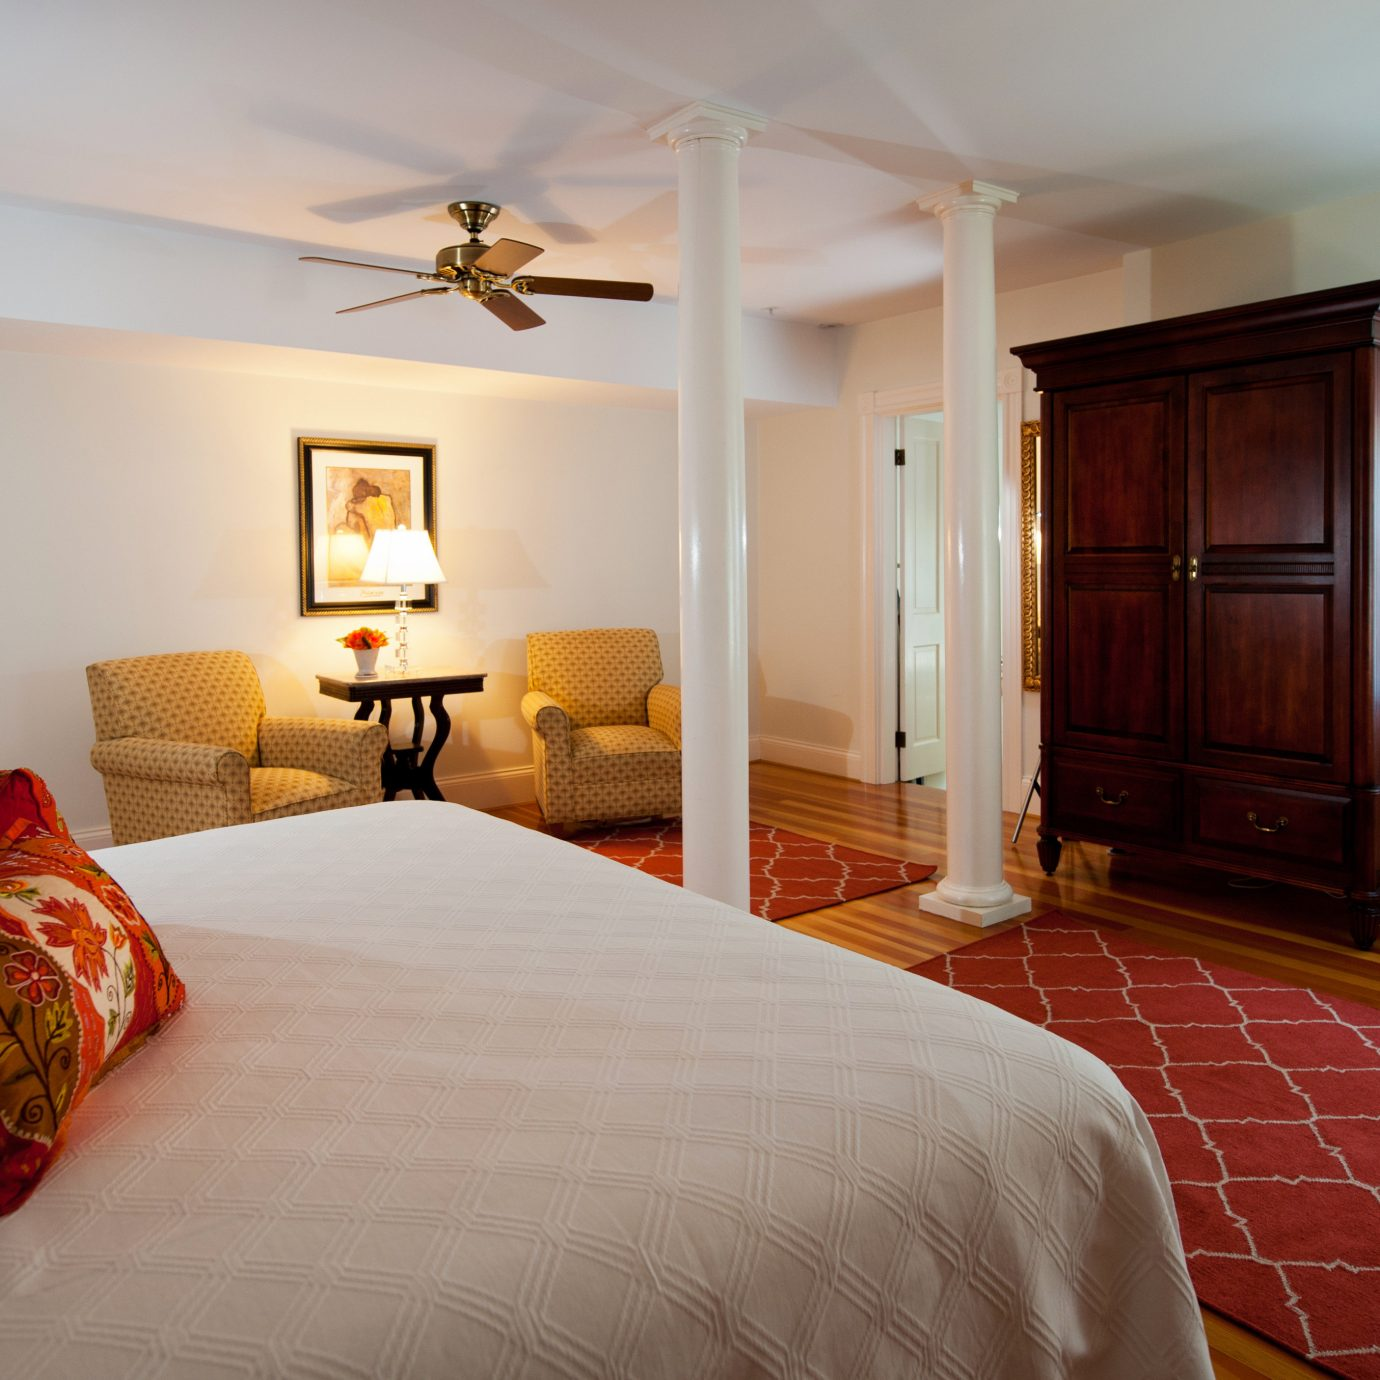 B&B Bedroom Inn Romantic Waterfront property Suite home cottage